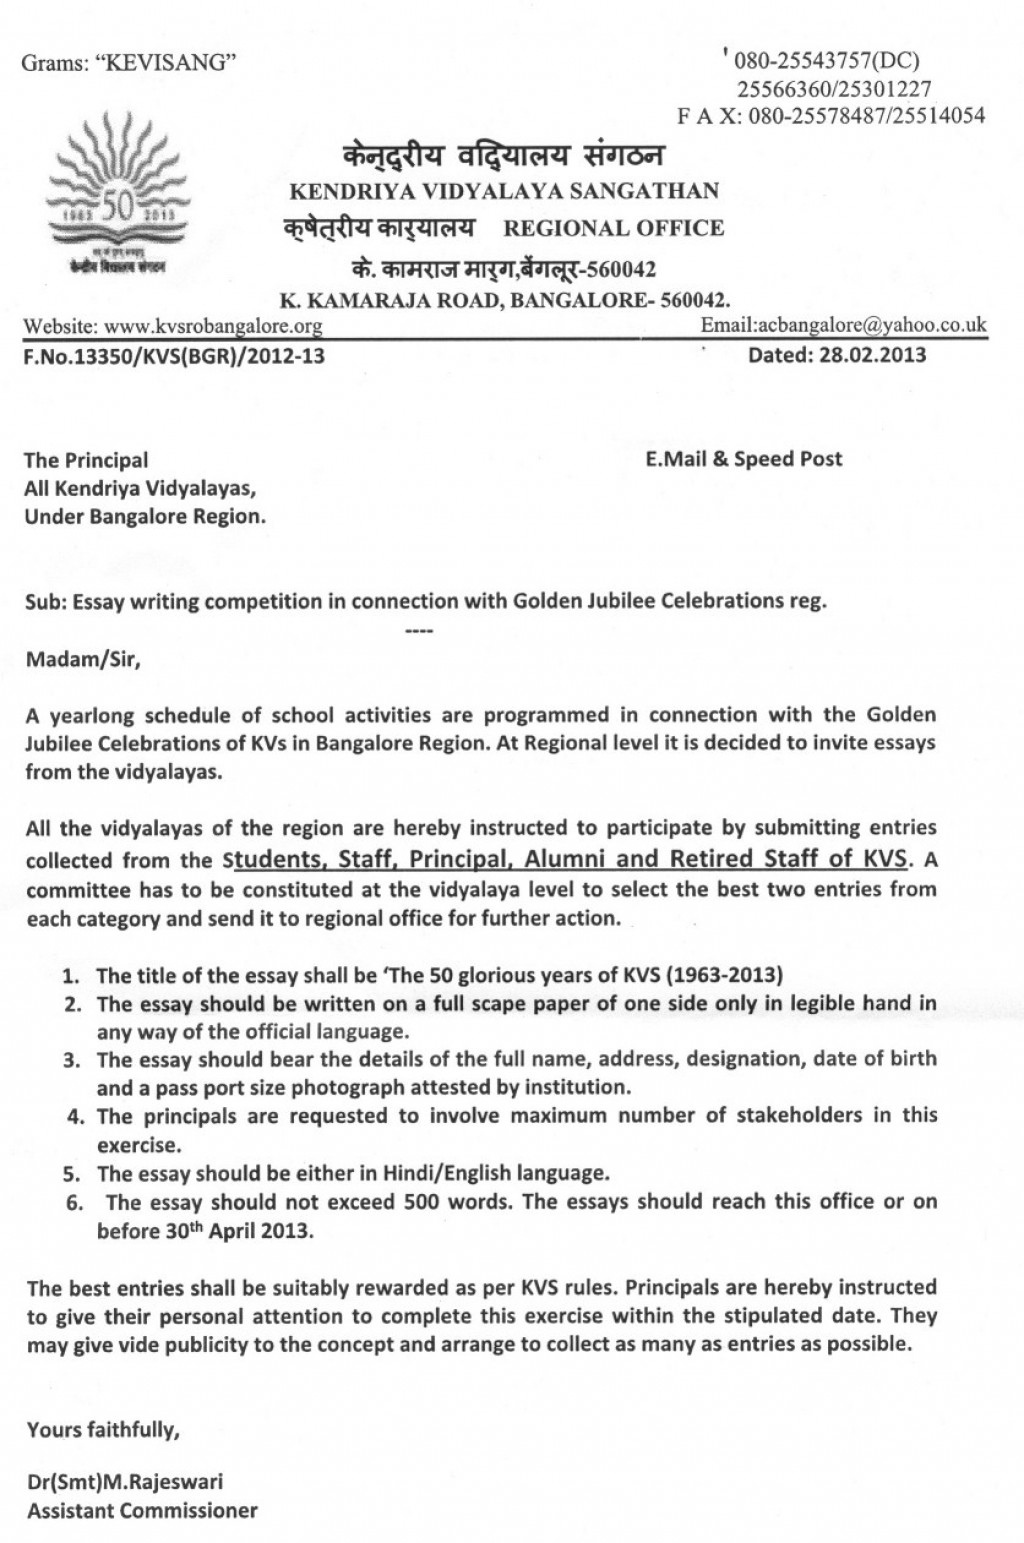 012 Essay Example On Principal Of School Writing Competition For Golden Ju College Admission Format Heading Application Contests Stunning Students 2019 In India International 2017 Large